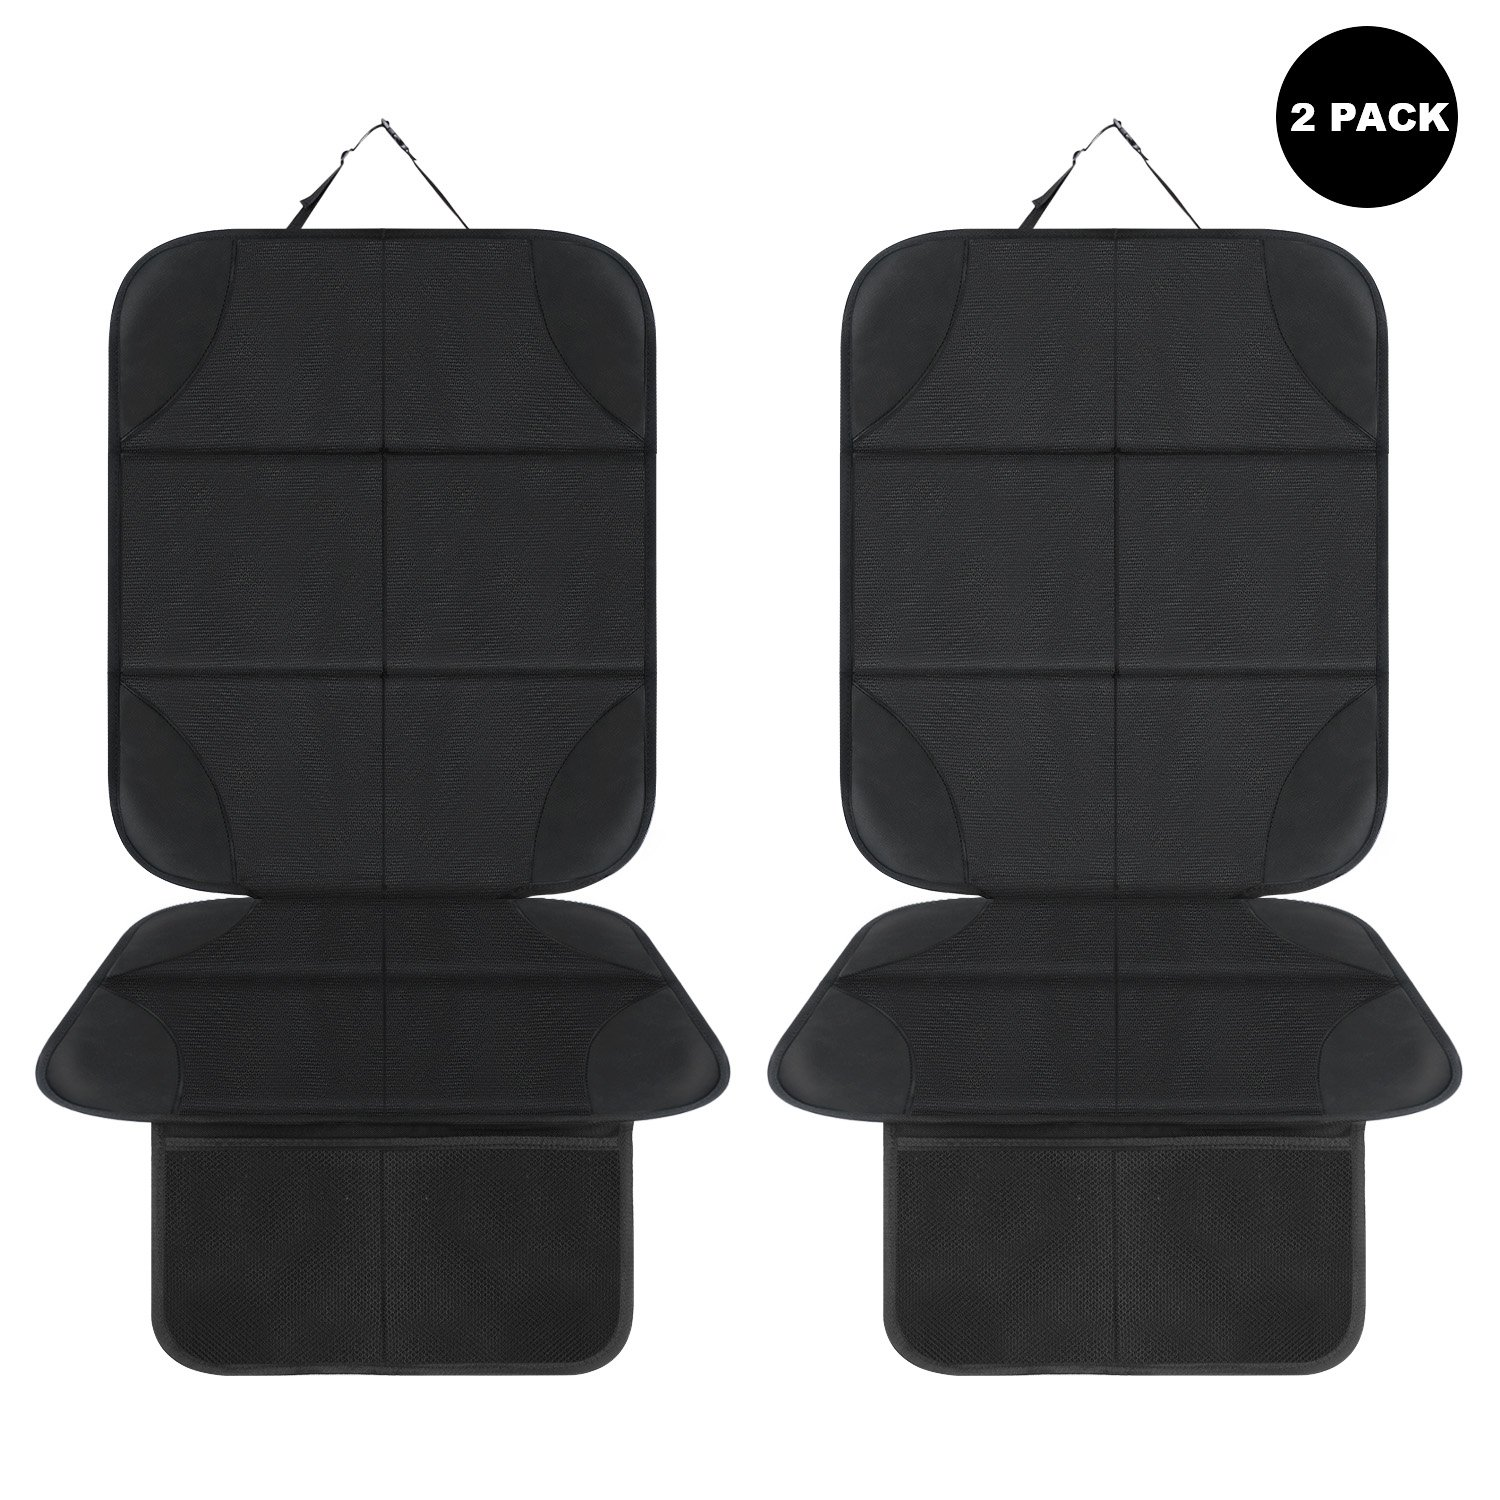 AOAFUN 2 Pack Car Seat Protector,with Thickest Padding,Best Protection for Cars Seats, Cover Pad Protects Automotive Vehicle Leather or Cloth Upholstery. (Black)